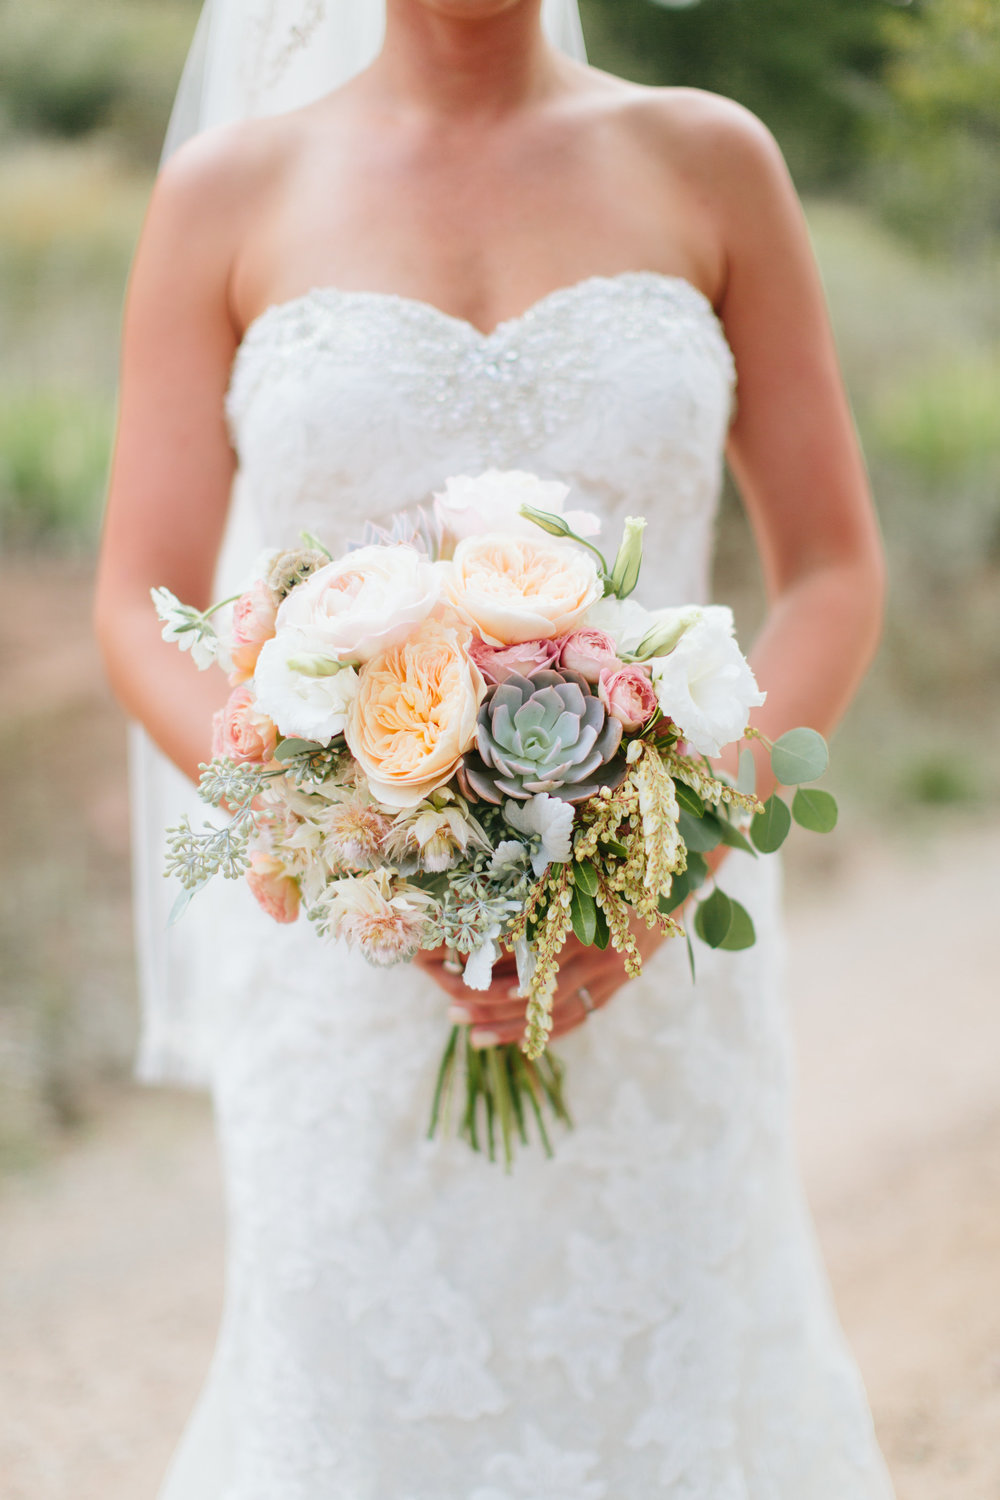 Lace and Lilies, Bridal blush and peach bouquet